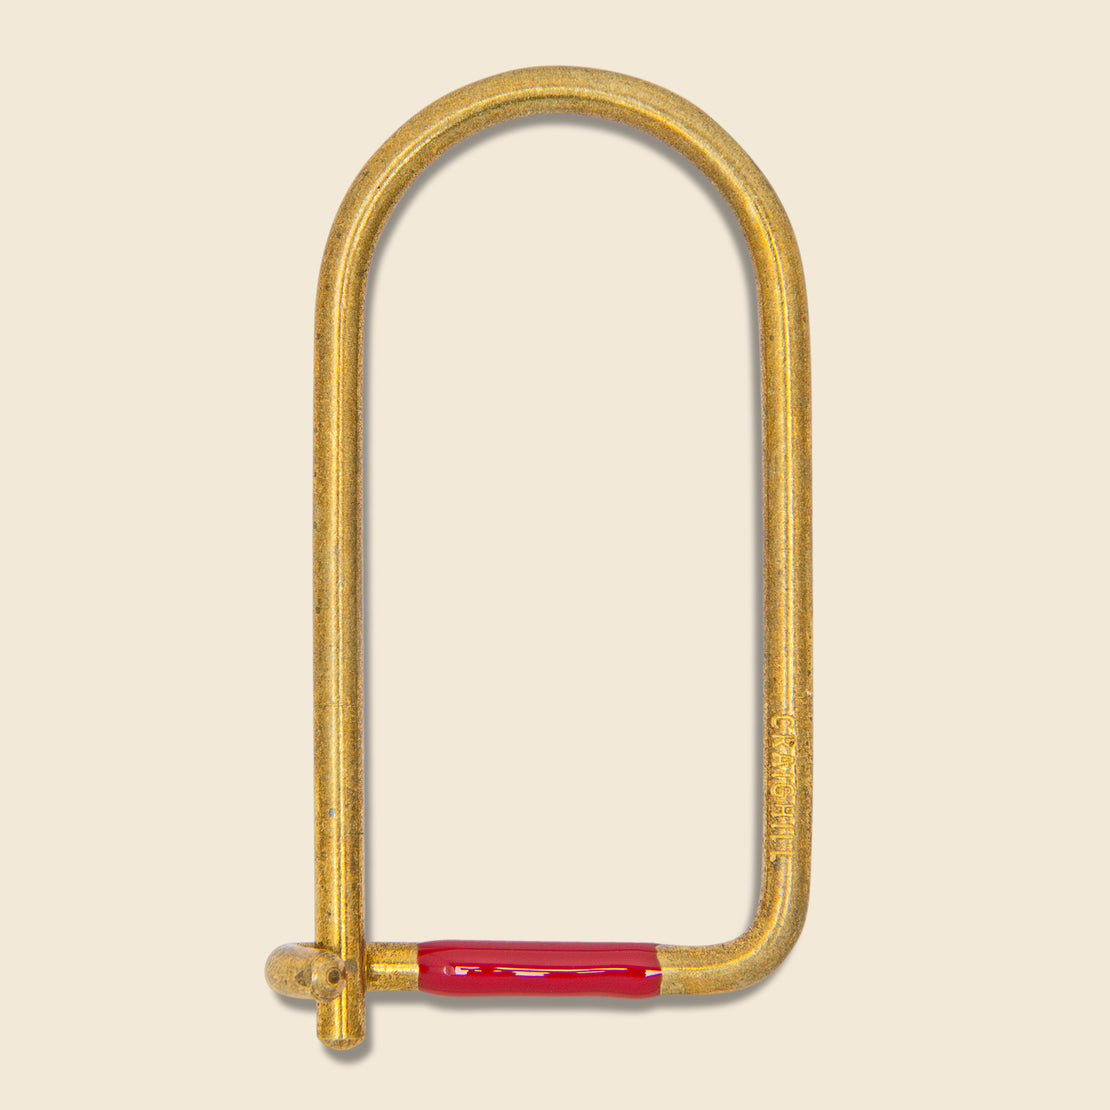 Craighill Wilson Enameled Key Ring - Brass/Red